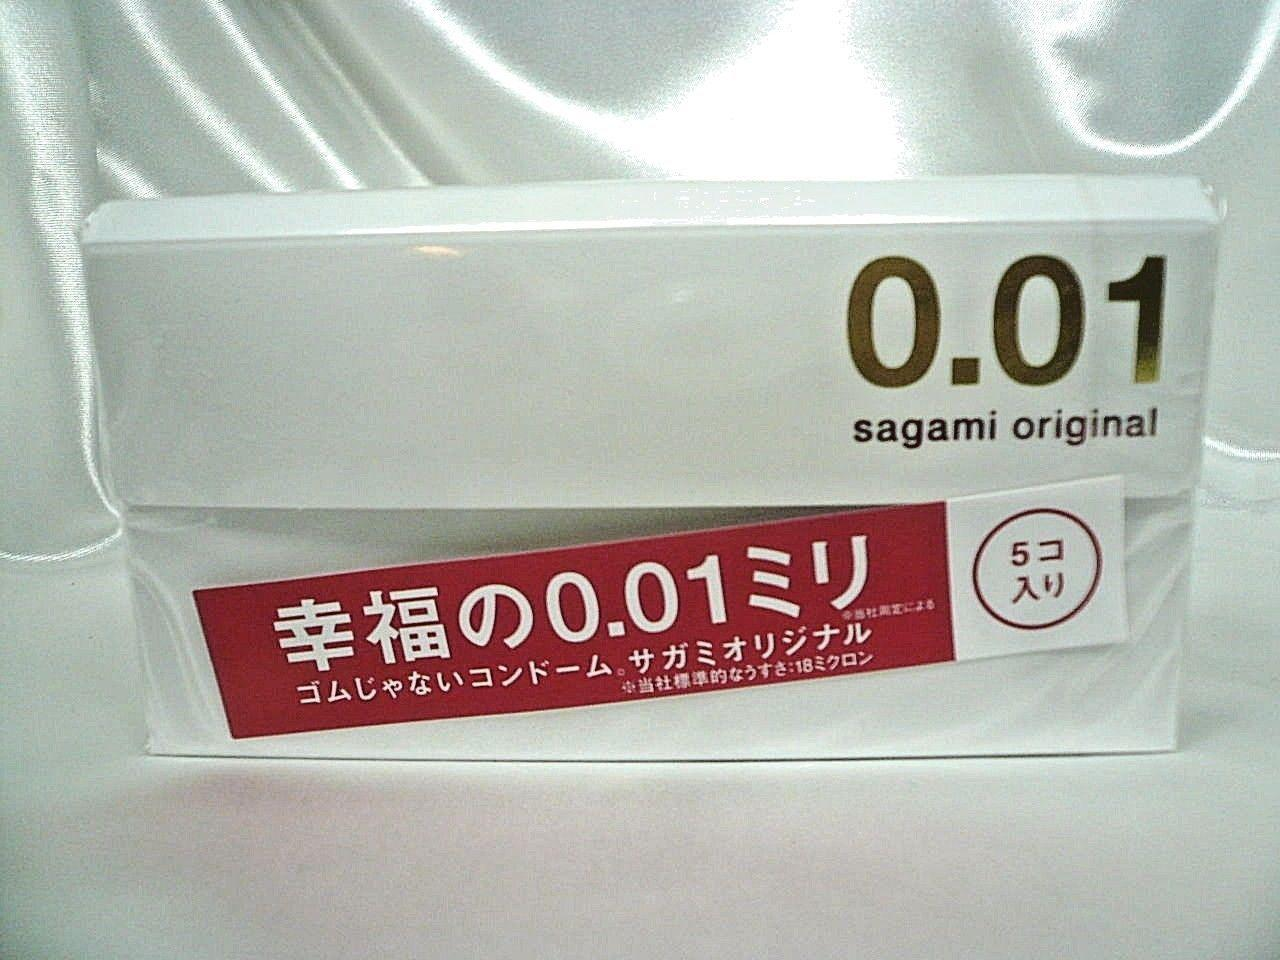 Sagami Original 0.01 From Japan (5pcs) By Retail Ministry.